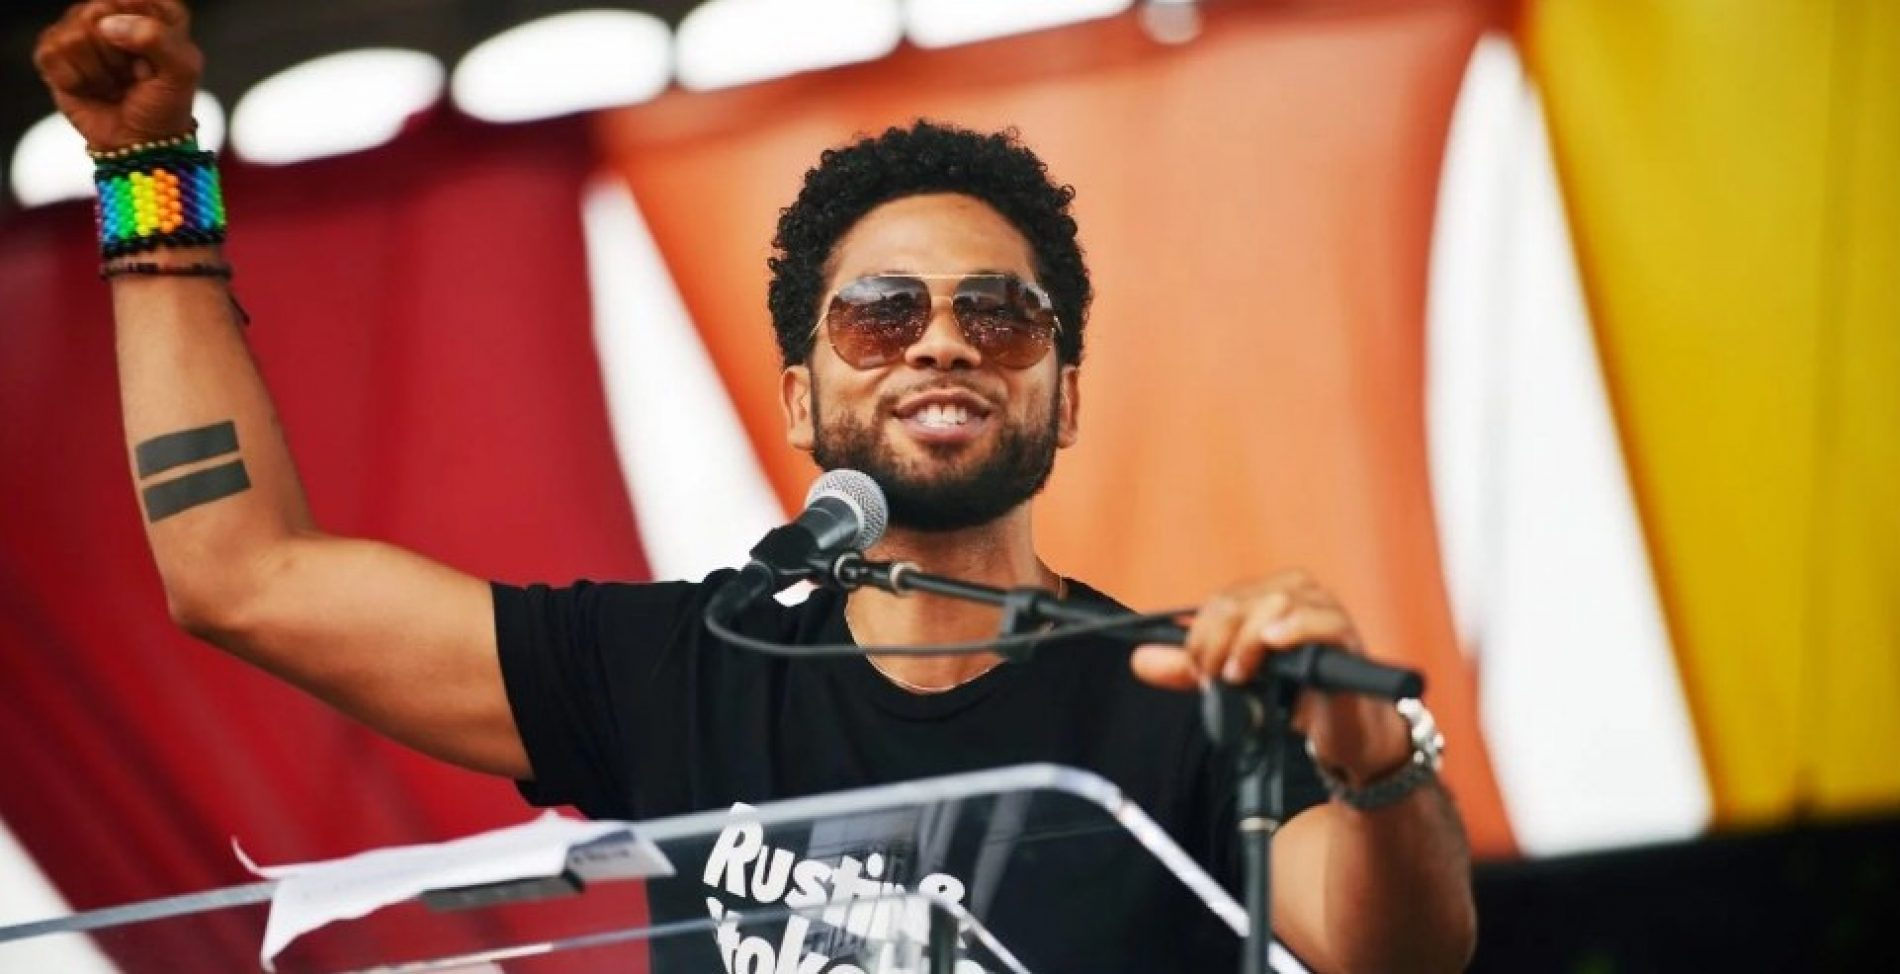 Opinion: After Jussie Smollett, Will Real Victims of Anti-LGBT Hate Crimes Be Heard?